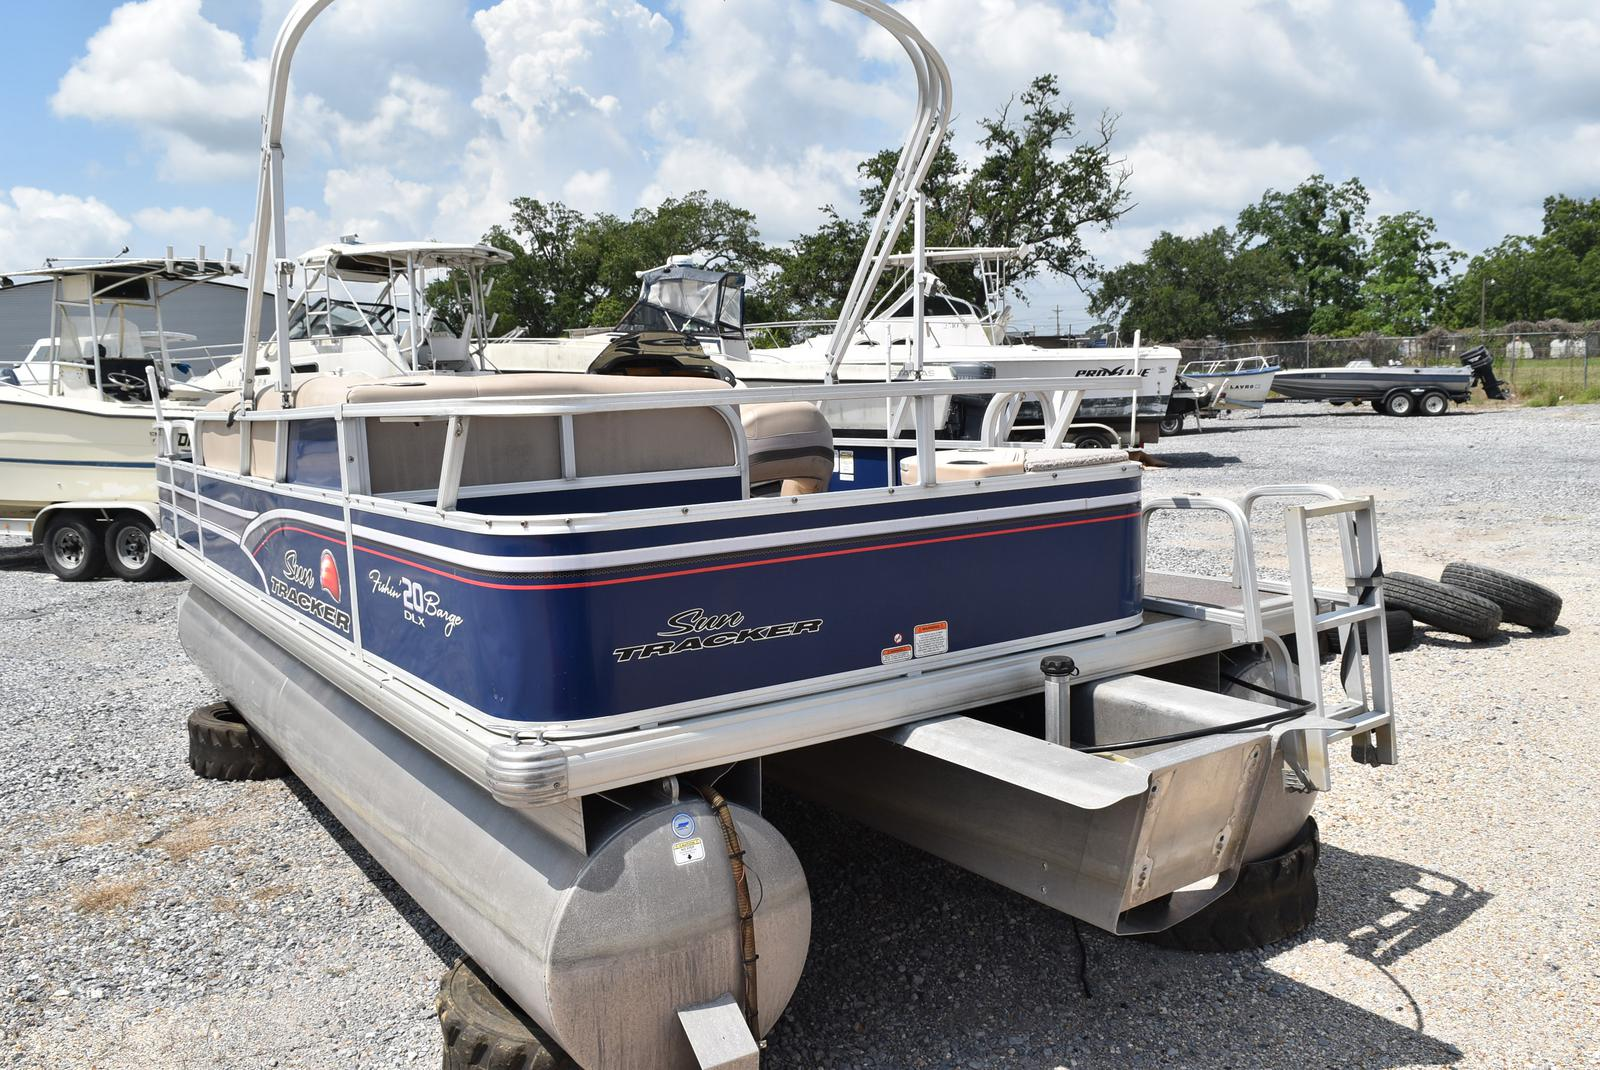 2015 Sun Tracker boat for sale, model of the boat is 20 Party Barge & Image # 4 of 6